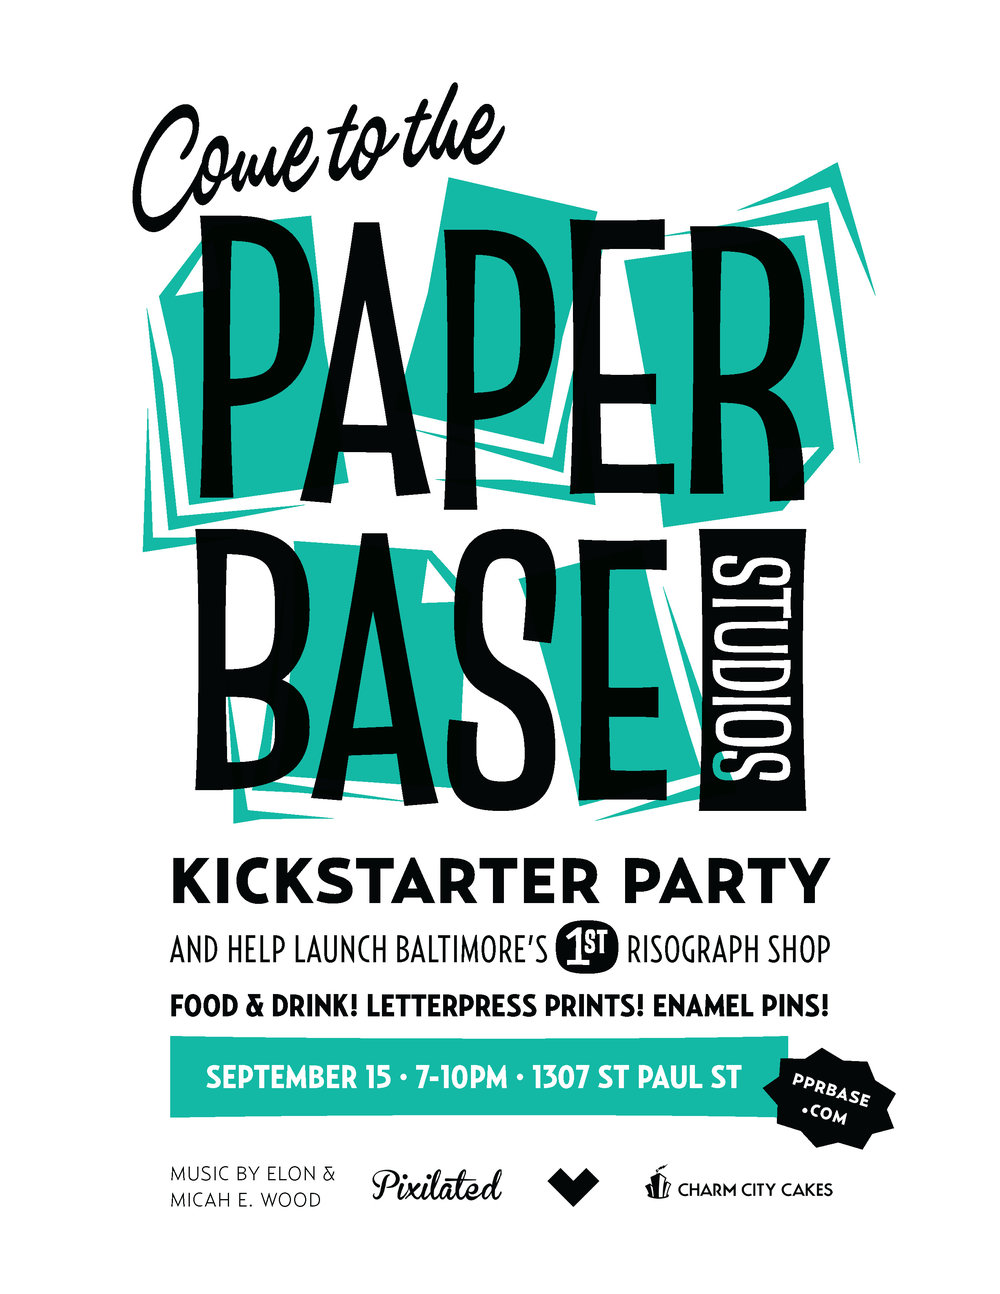 PaperBase Kickstarter launch party